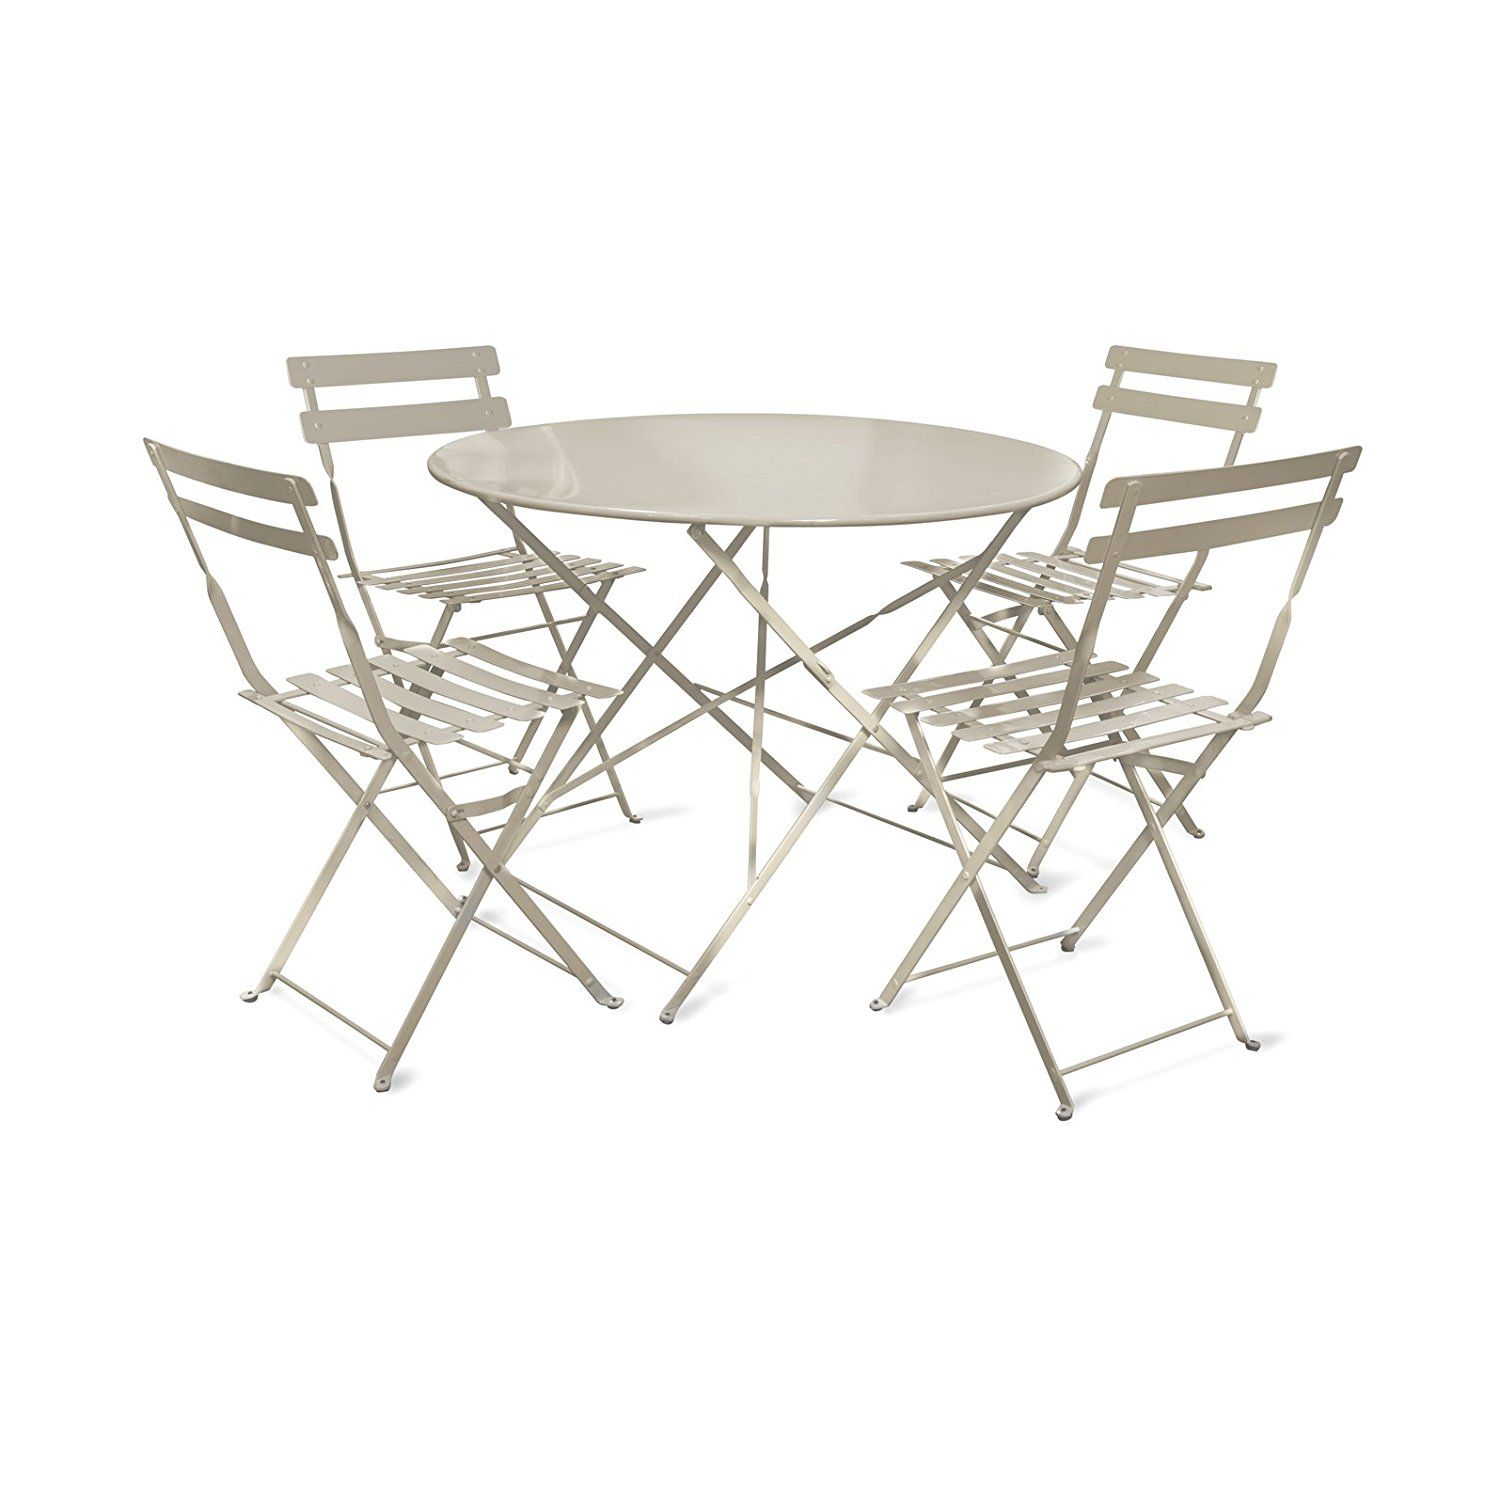 This Garden Trading Large Rive Droite Bistro Set Of Table And 4 Chairs In Clay